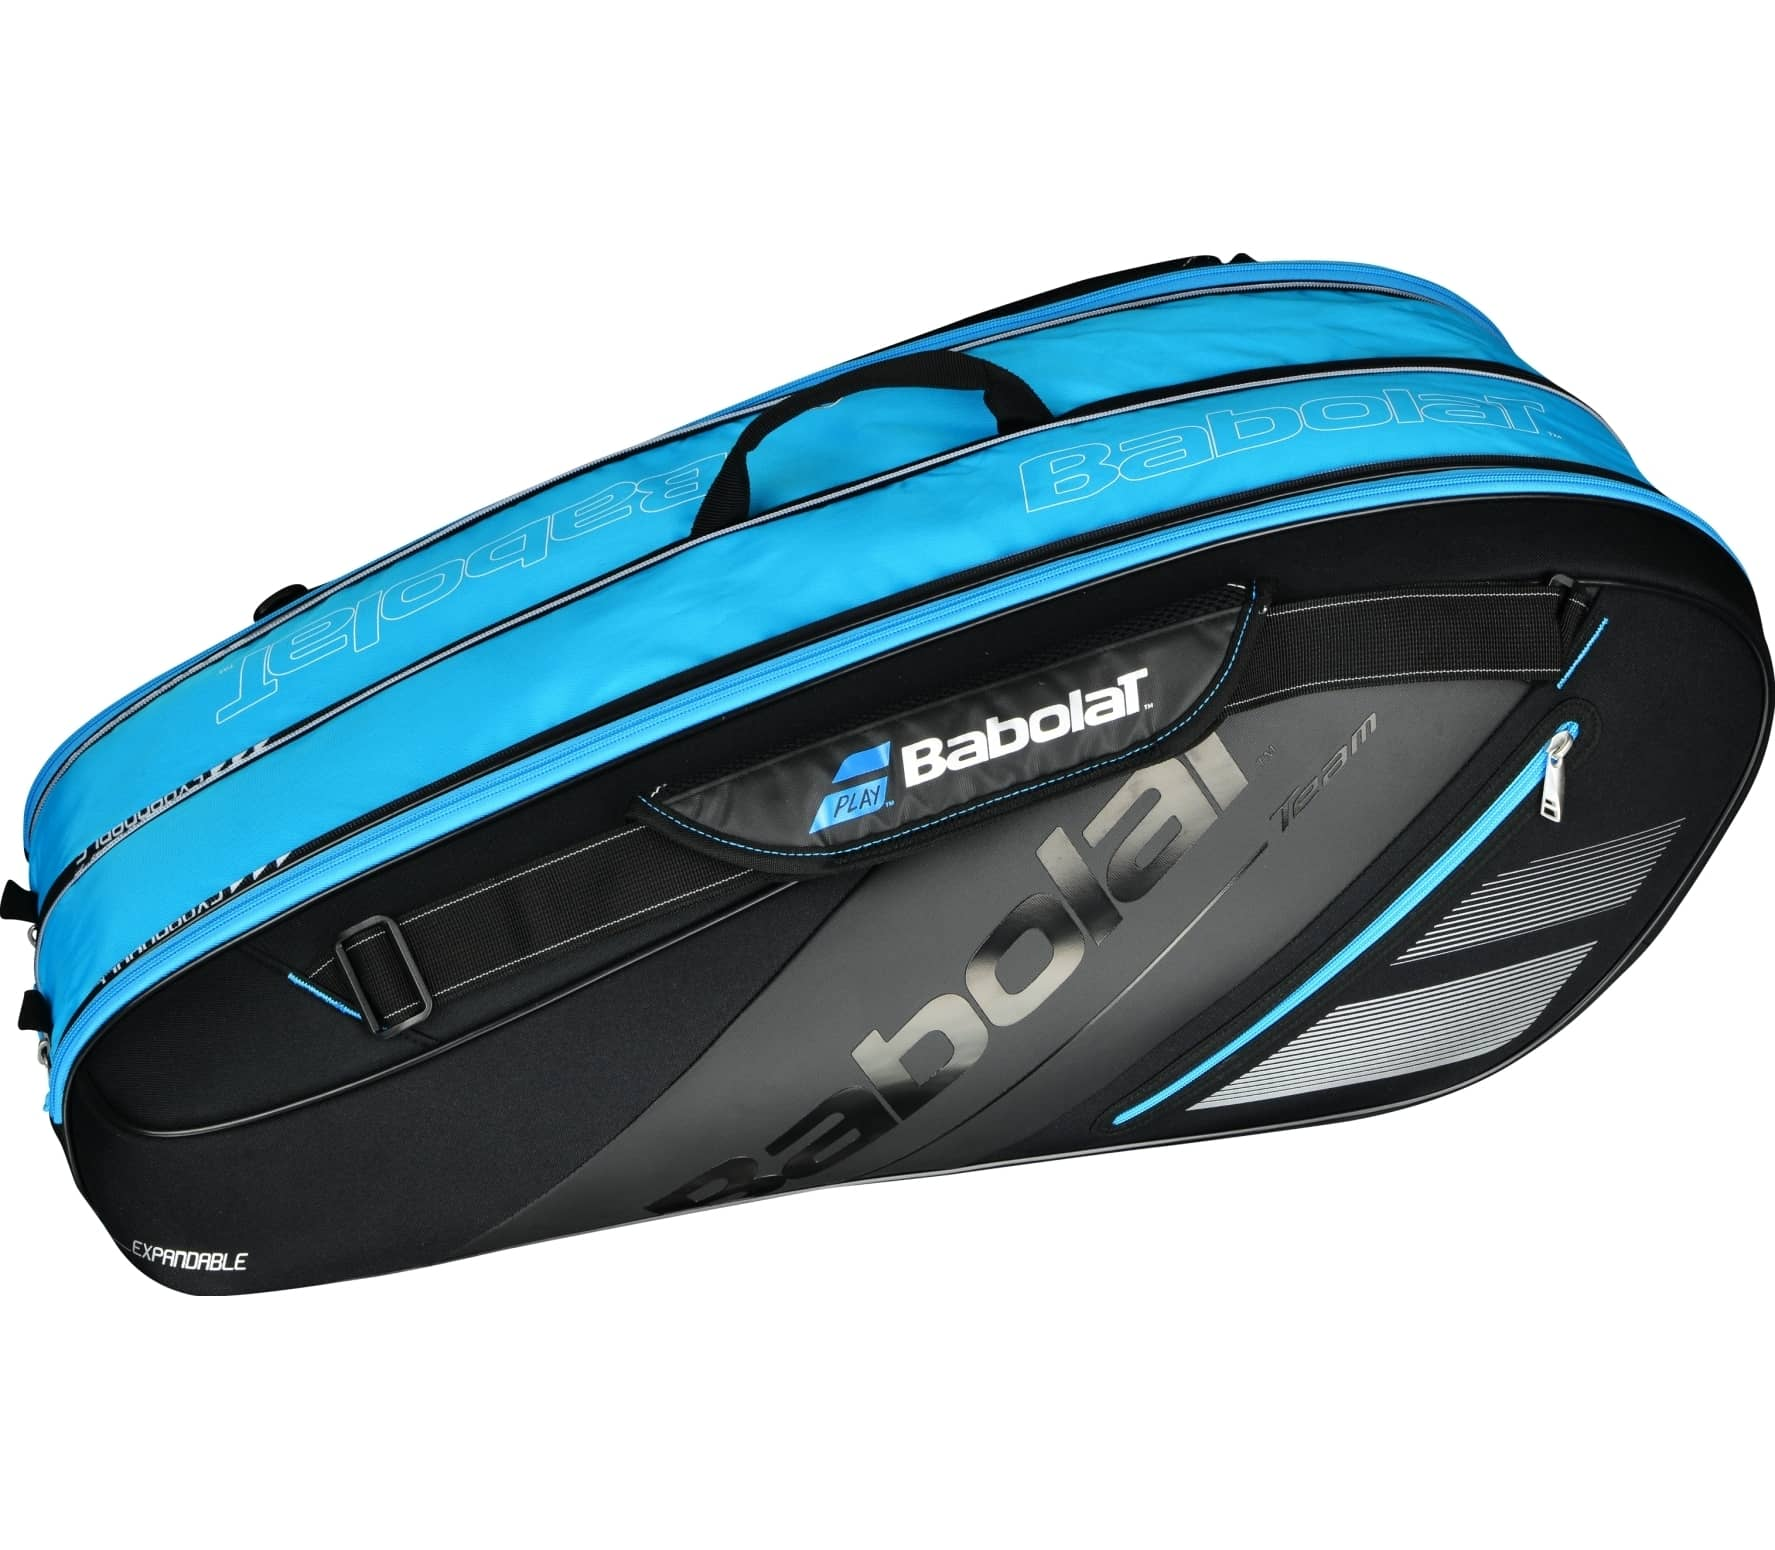 Babolat - Racket Holder X6 Expandable tennis bag (black/blue)